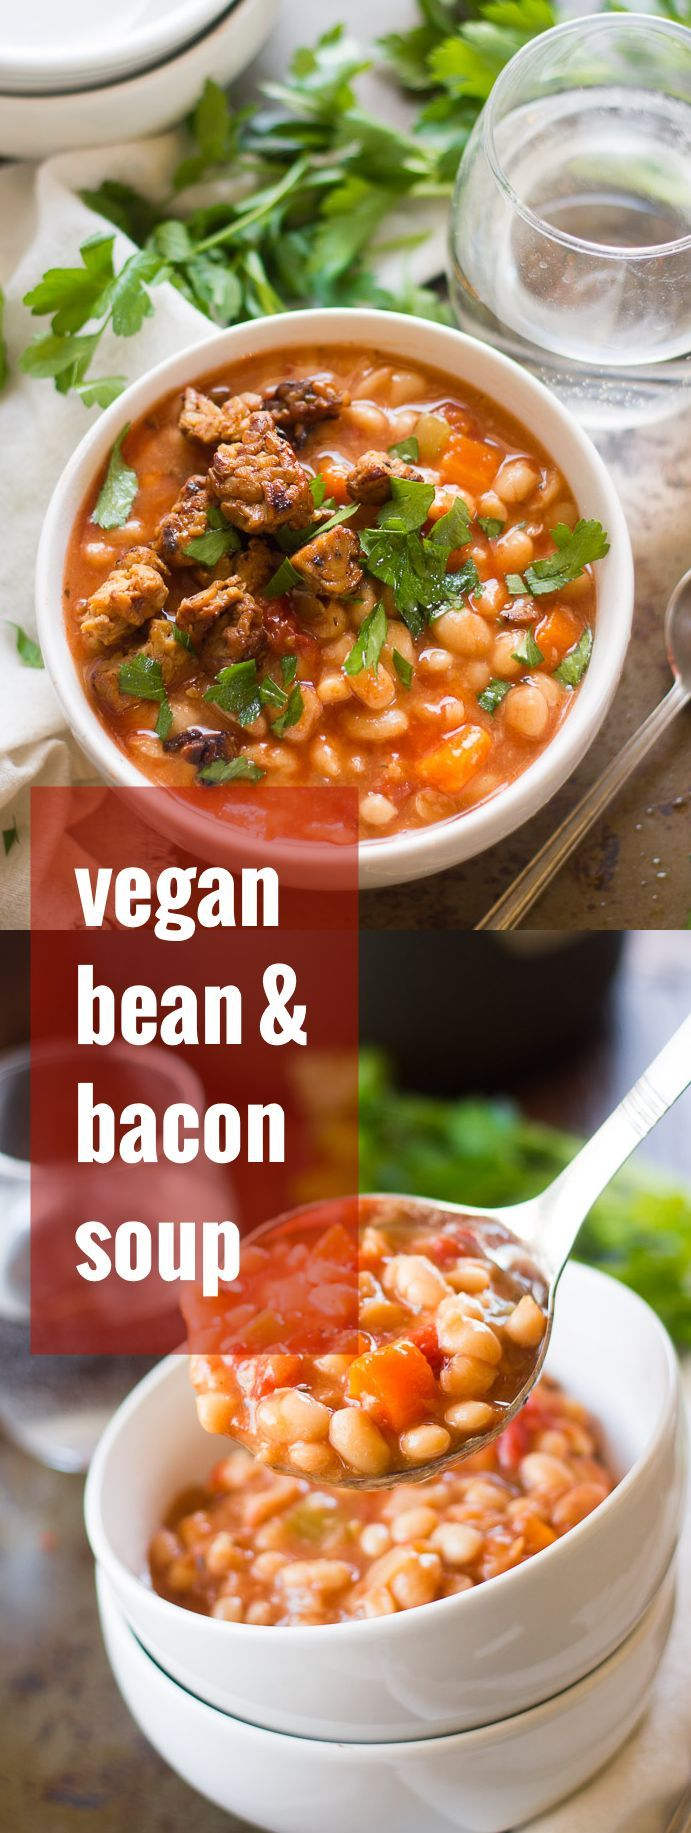 This creamy bean soup cooks up hands-free in the slow cooker and gets topped with a sprinkling of smoky tempeh bacon.